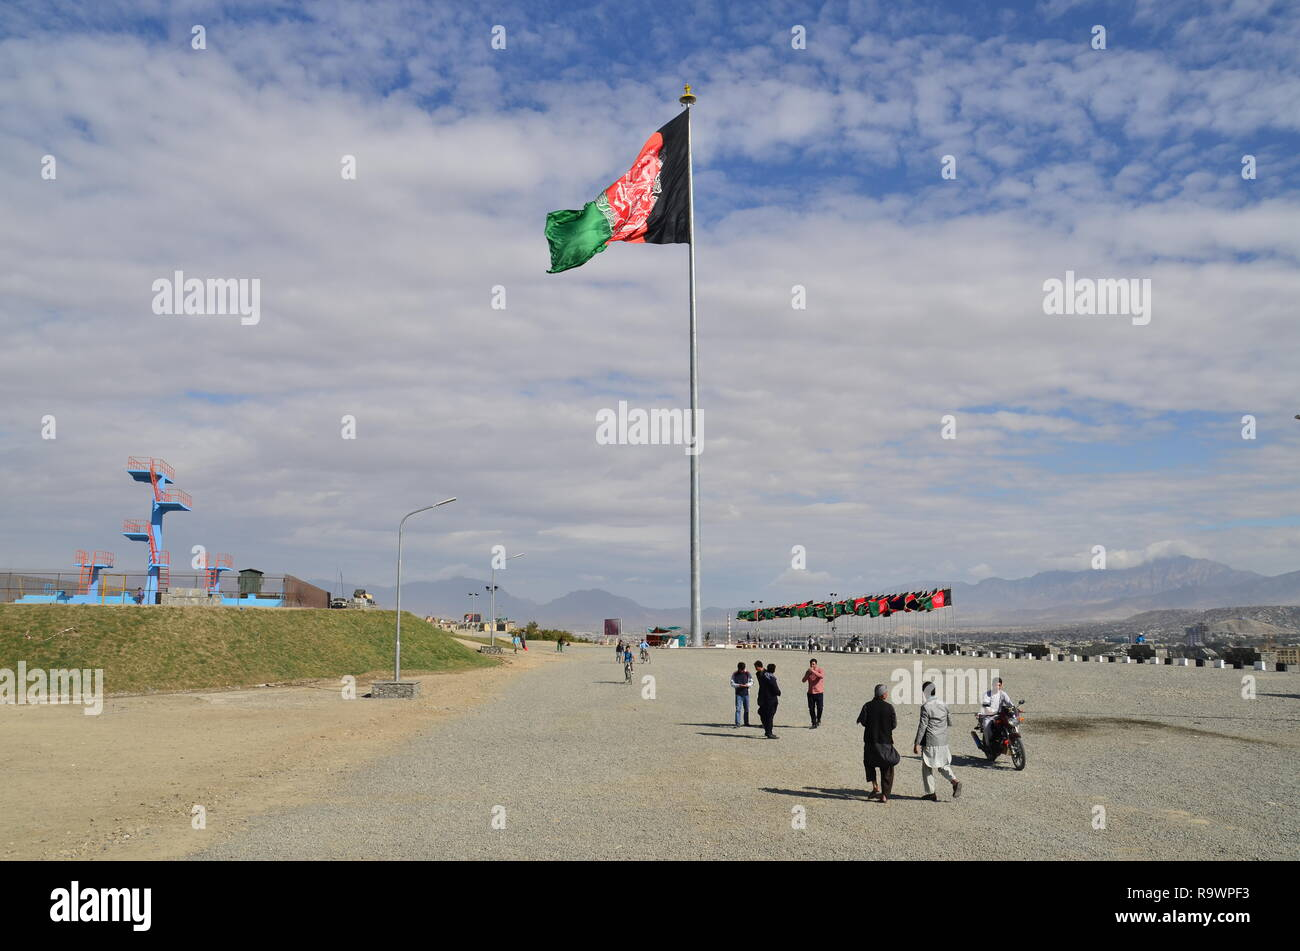 People walk by the flag of Afghanistan in a park in Kabul. - Stock Image